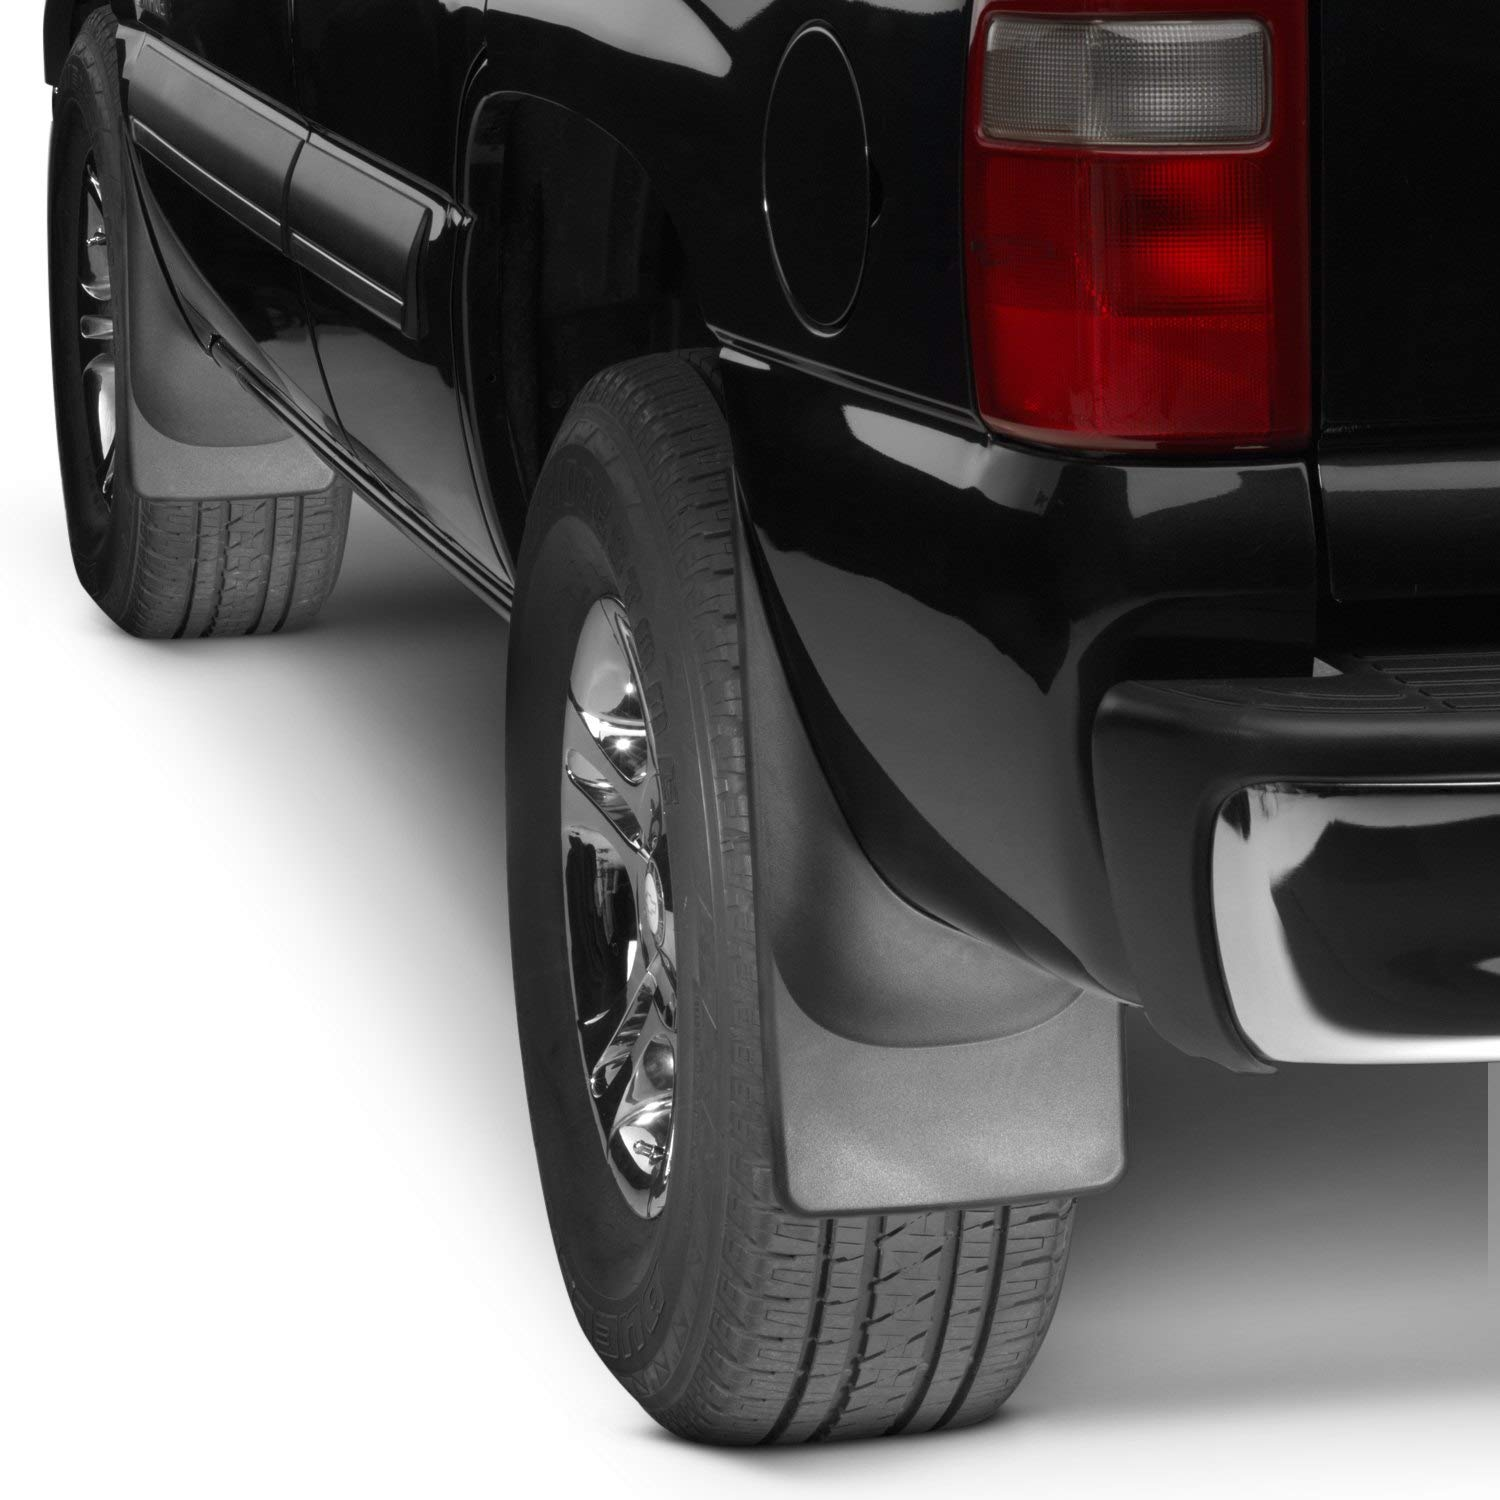 All Weather Weathertech No-Drill MudFlaps for Ford F-150-2015-2019 Front & Rear Set (Without Fender Flares)